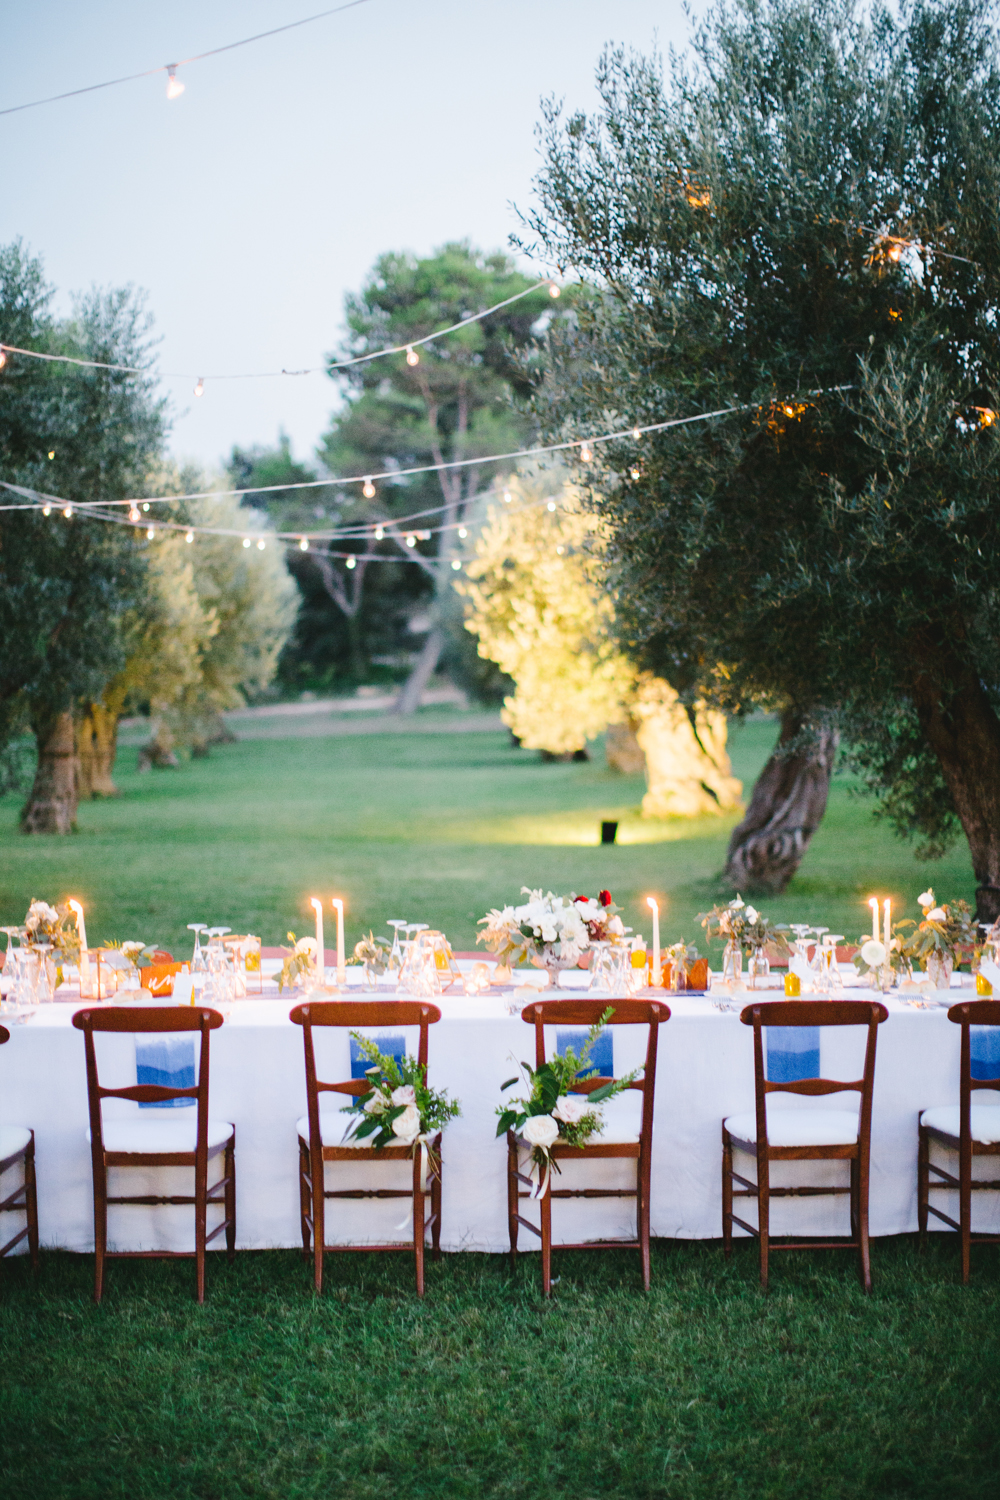 Les Amis Photo_Destination Wedding Photographer_Wedding in Puglia_BARMIC_15_610.jpg